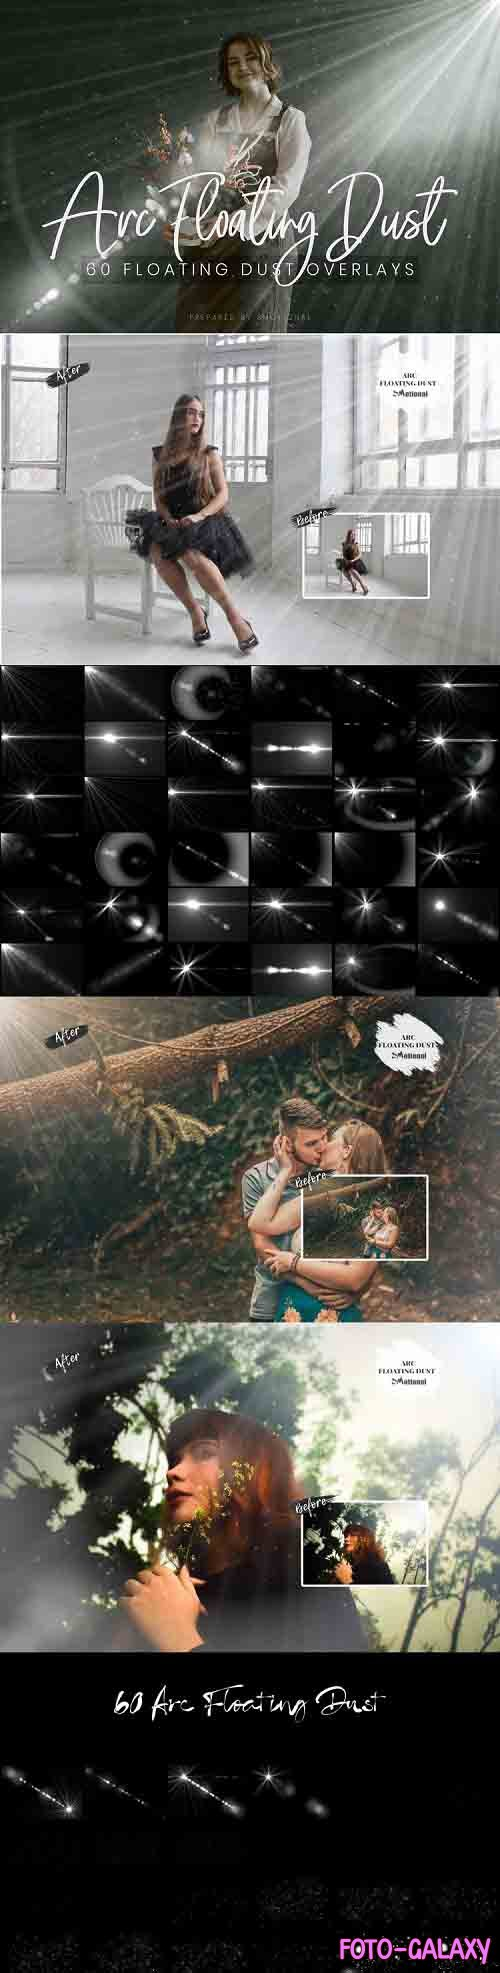 60 ARC Floating Dust Flare Effect Photo Overlays - 774826